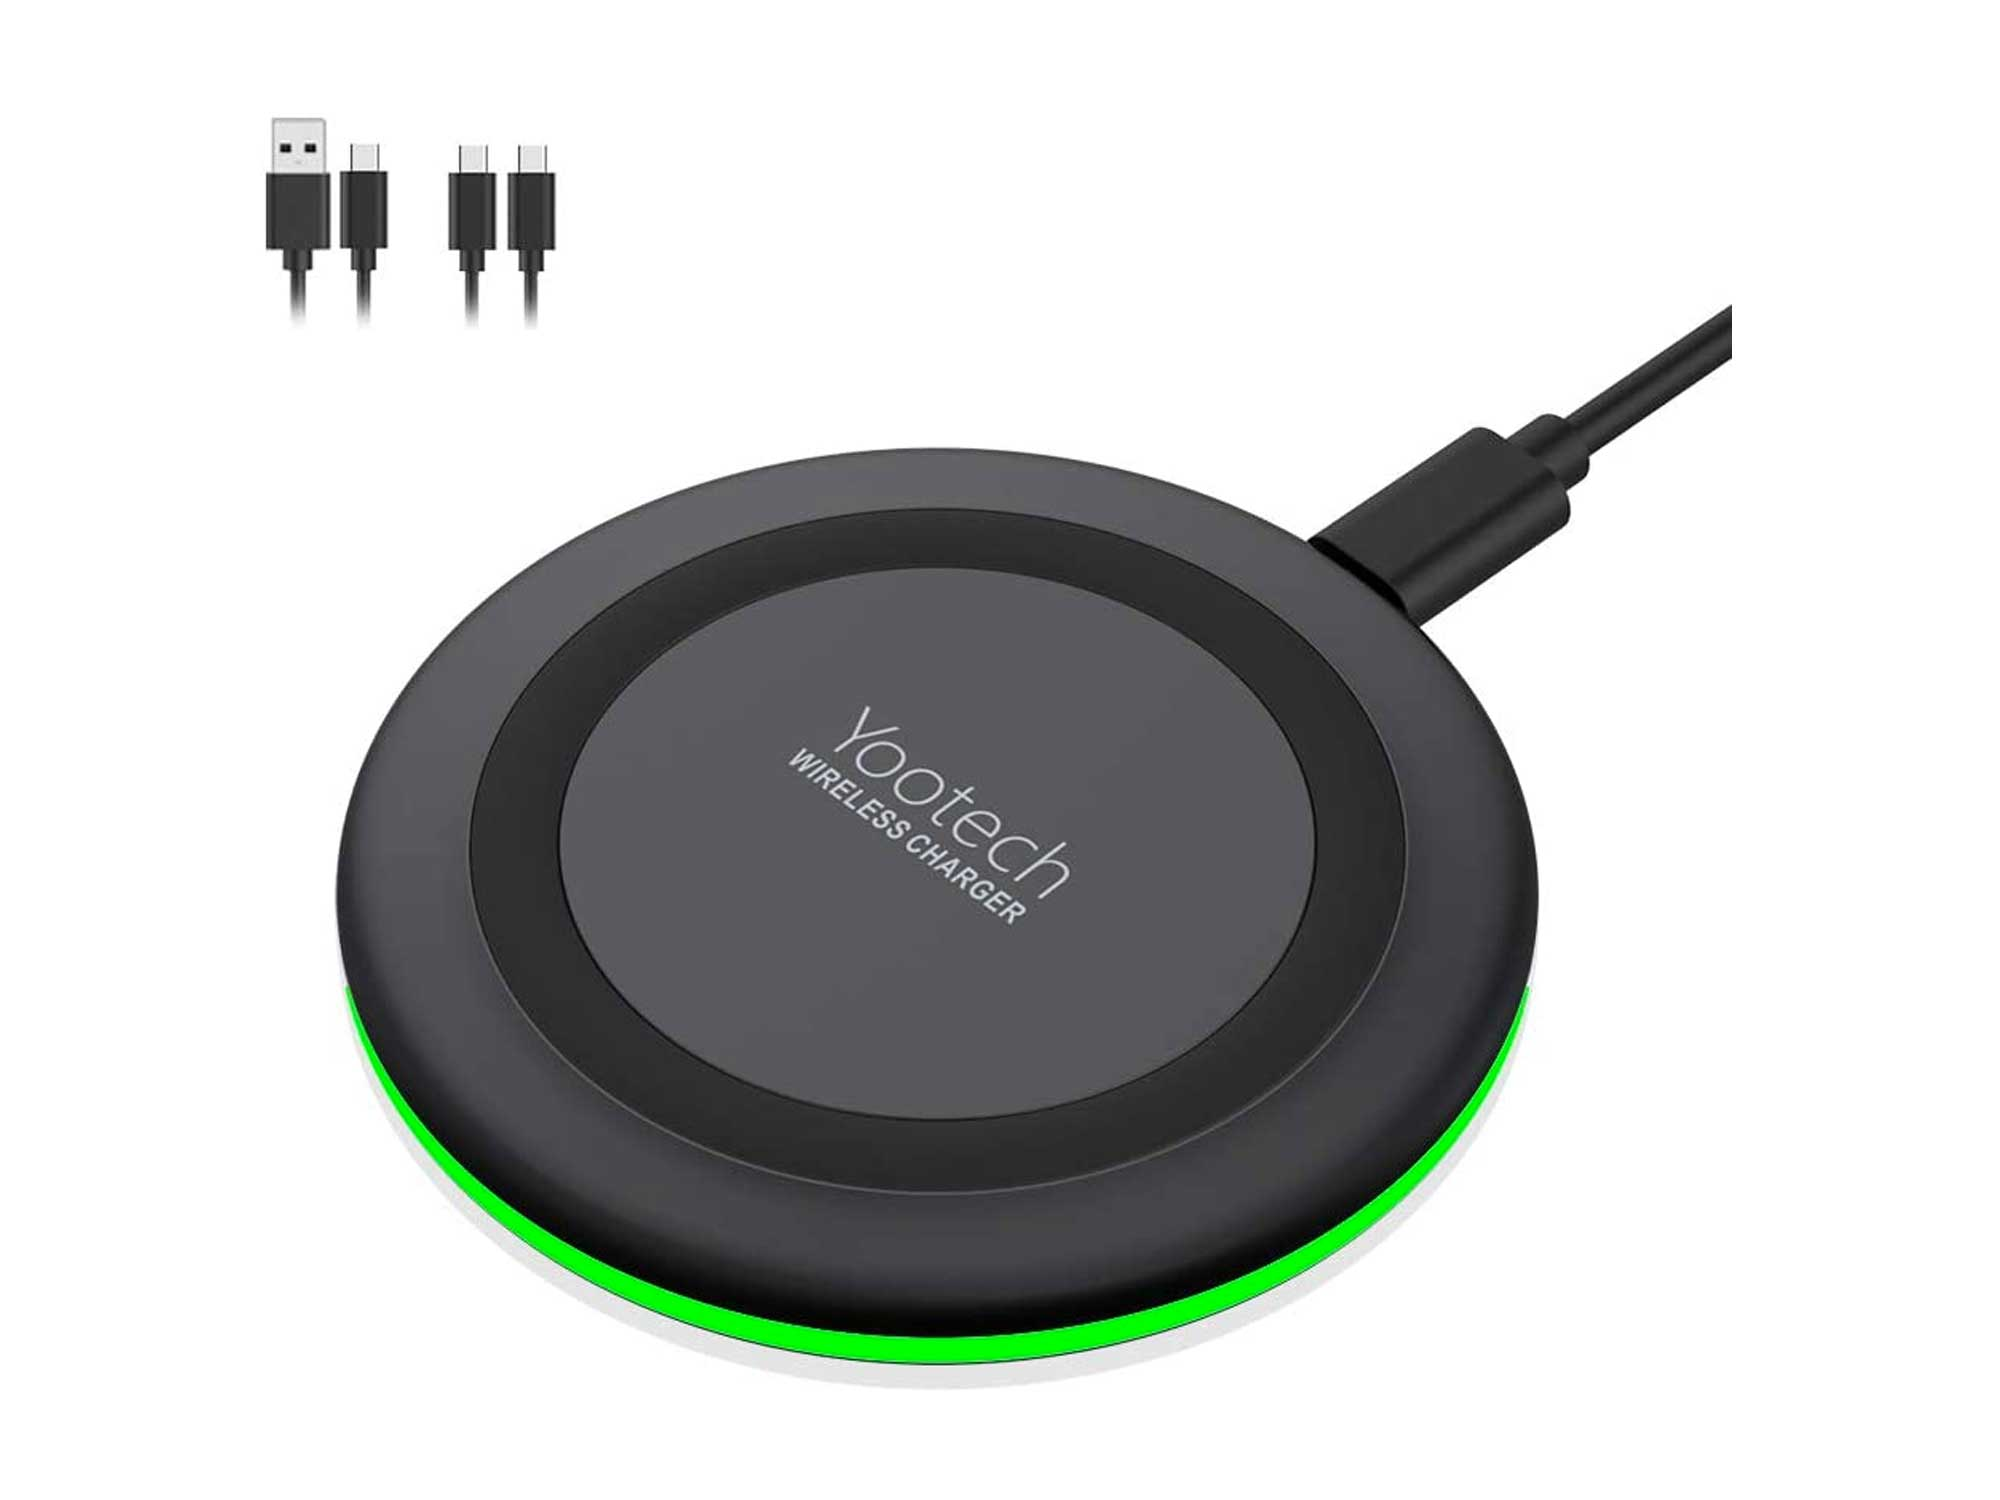 Yootech Wireless Charger,Qi-Certified 10W Max Fast Wireless Charging Pad Compatible with iPhone